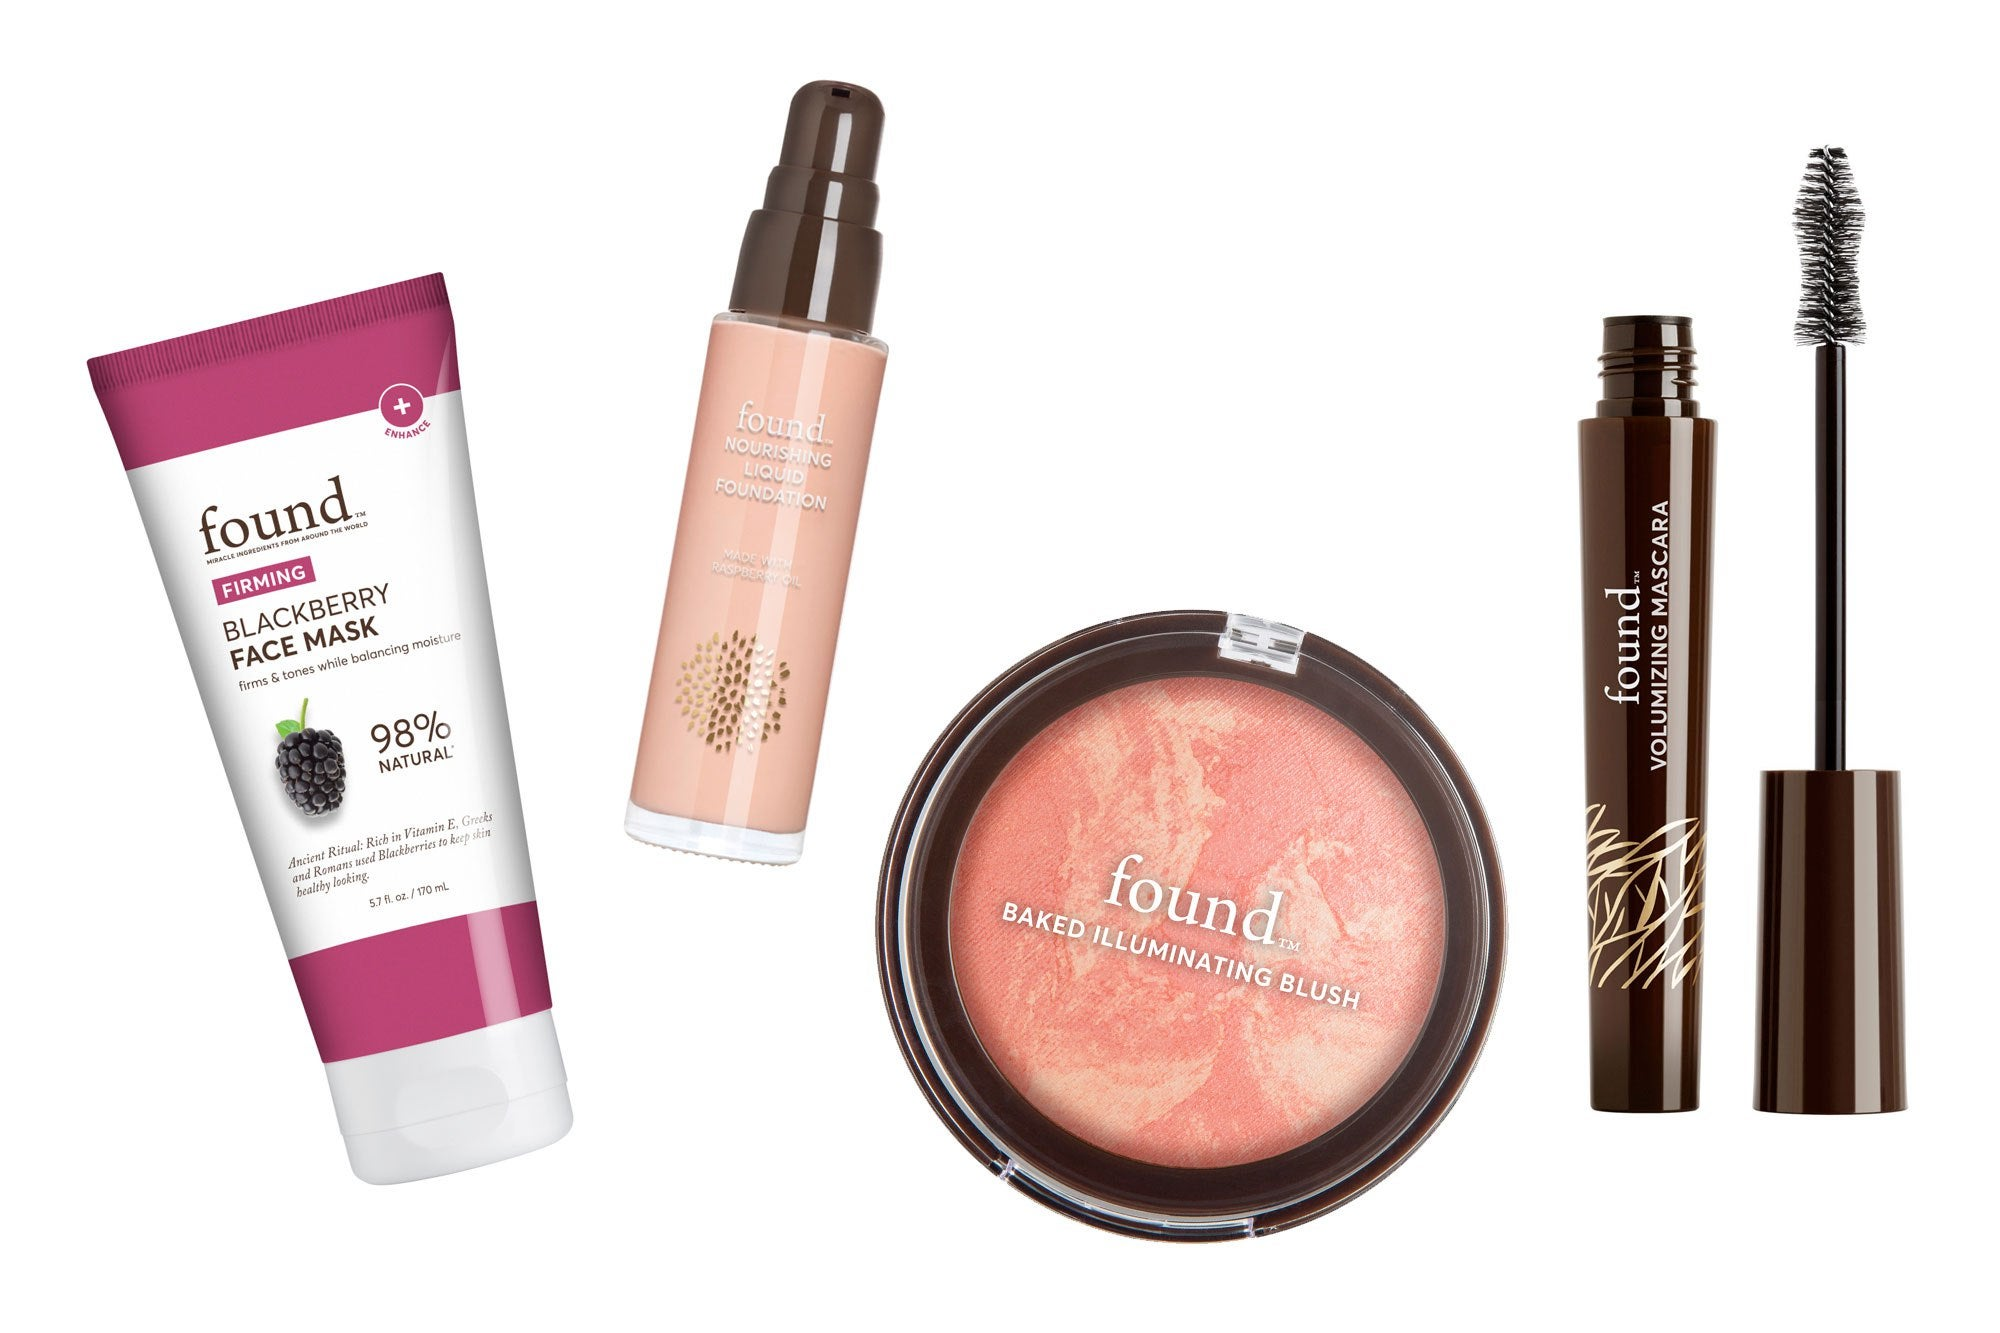 The Best Buys Under $15 from Walmart's New Natural Beauty Brand